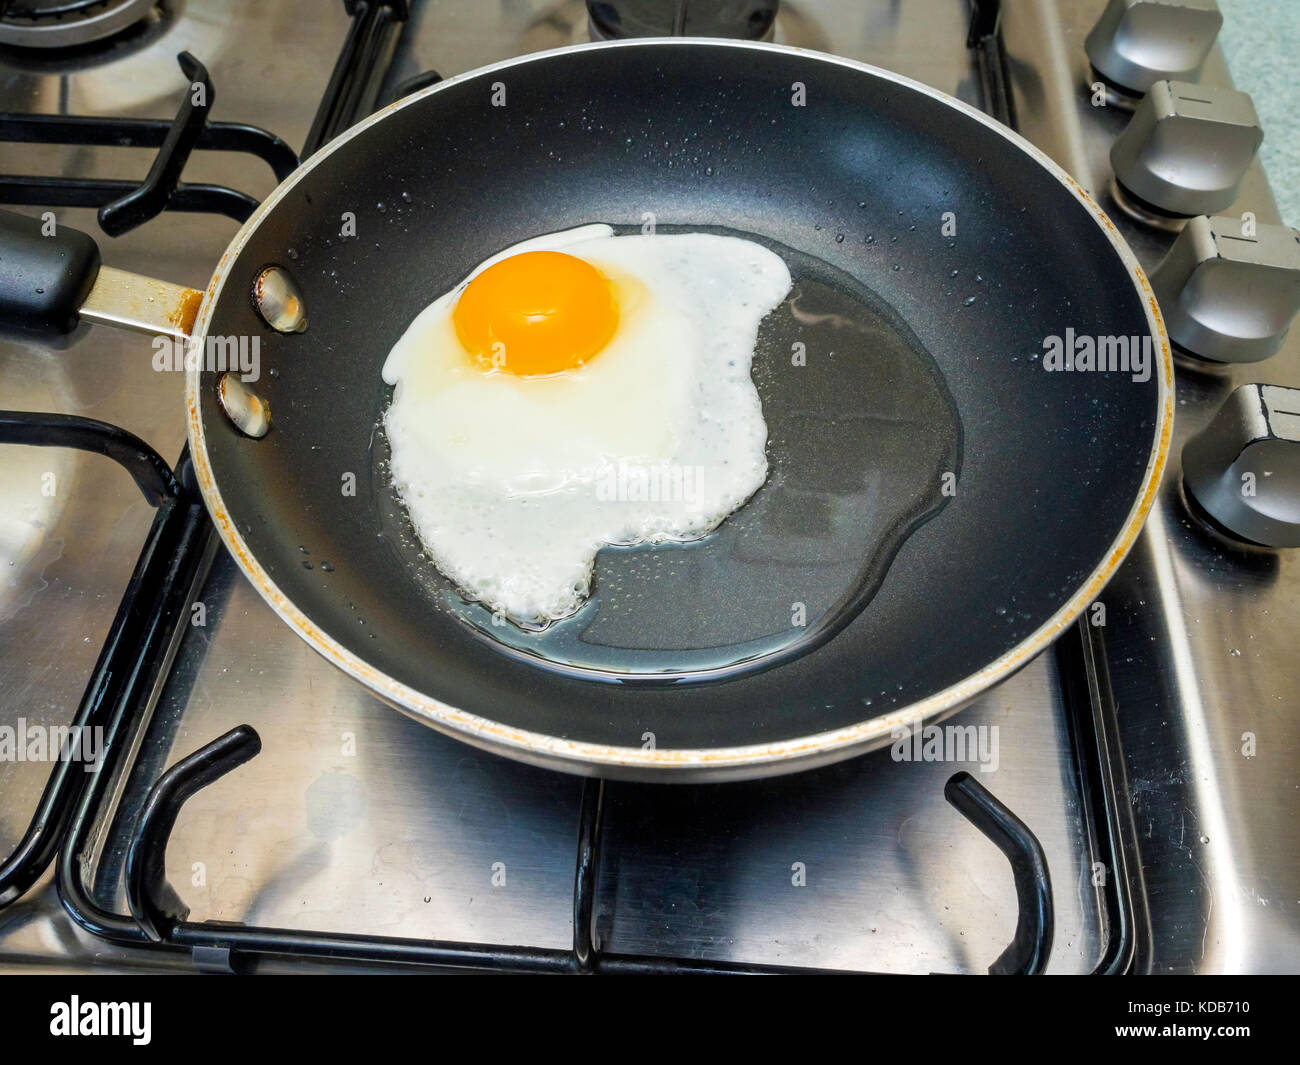 An egg being fried in sunflower oil in a small Teflon coated non stick frying pan on a gas hob - Stock Image